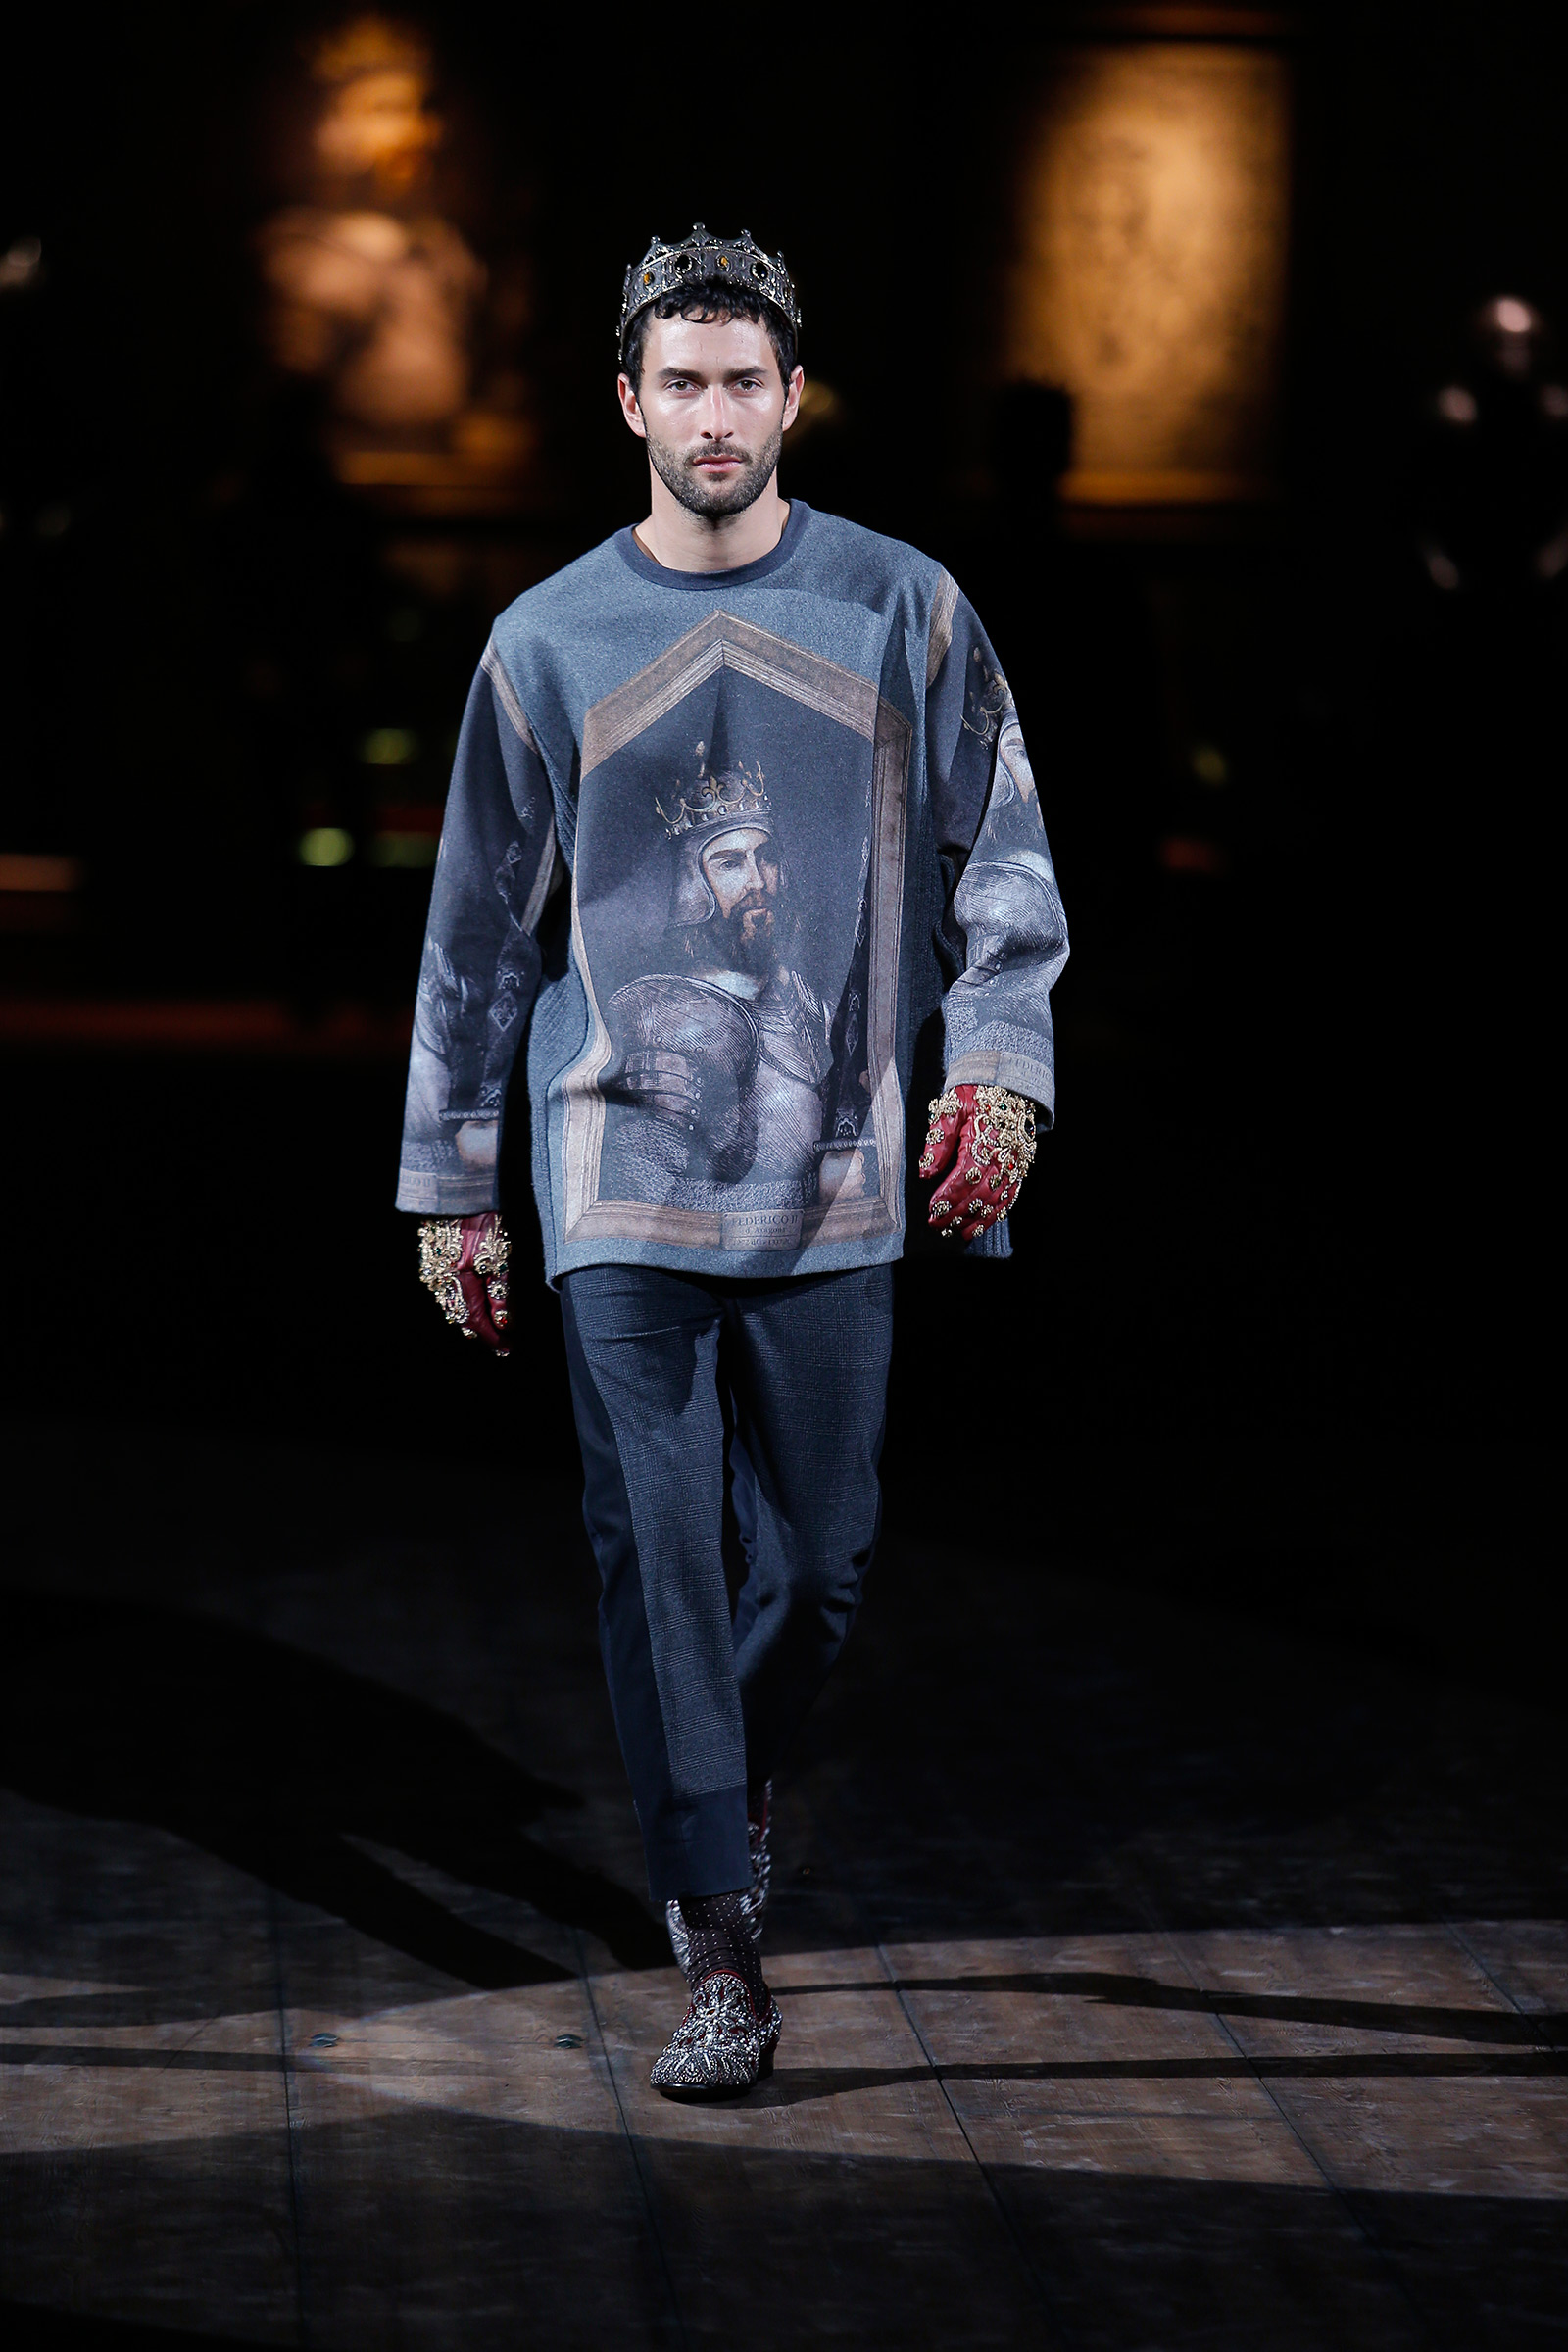 dolce-and-gabbana-fw-2014-2015-men-fashion-show-runway-04